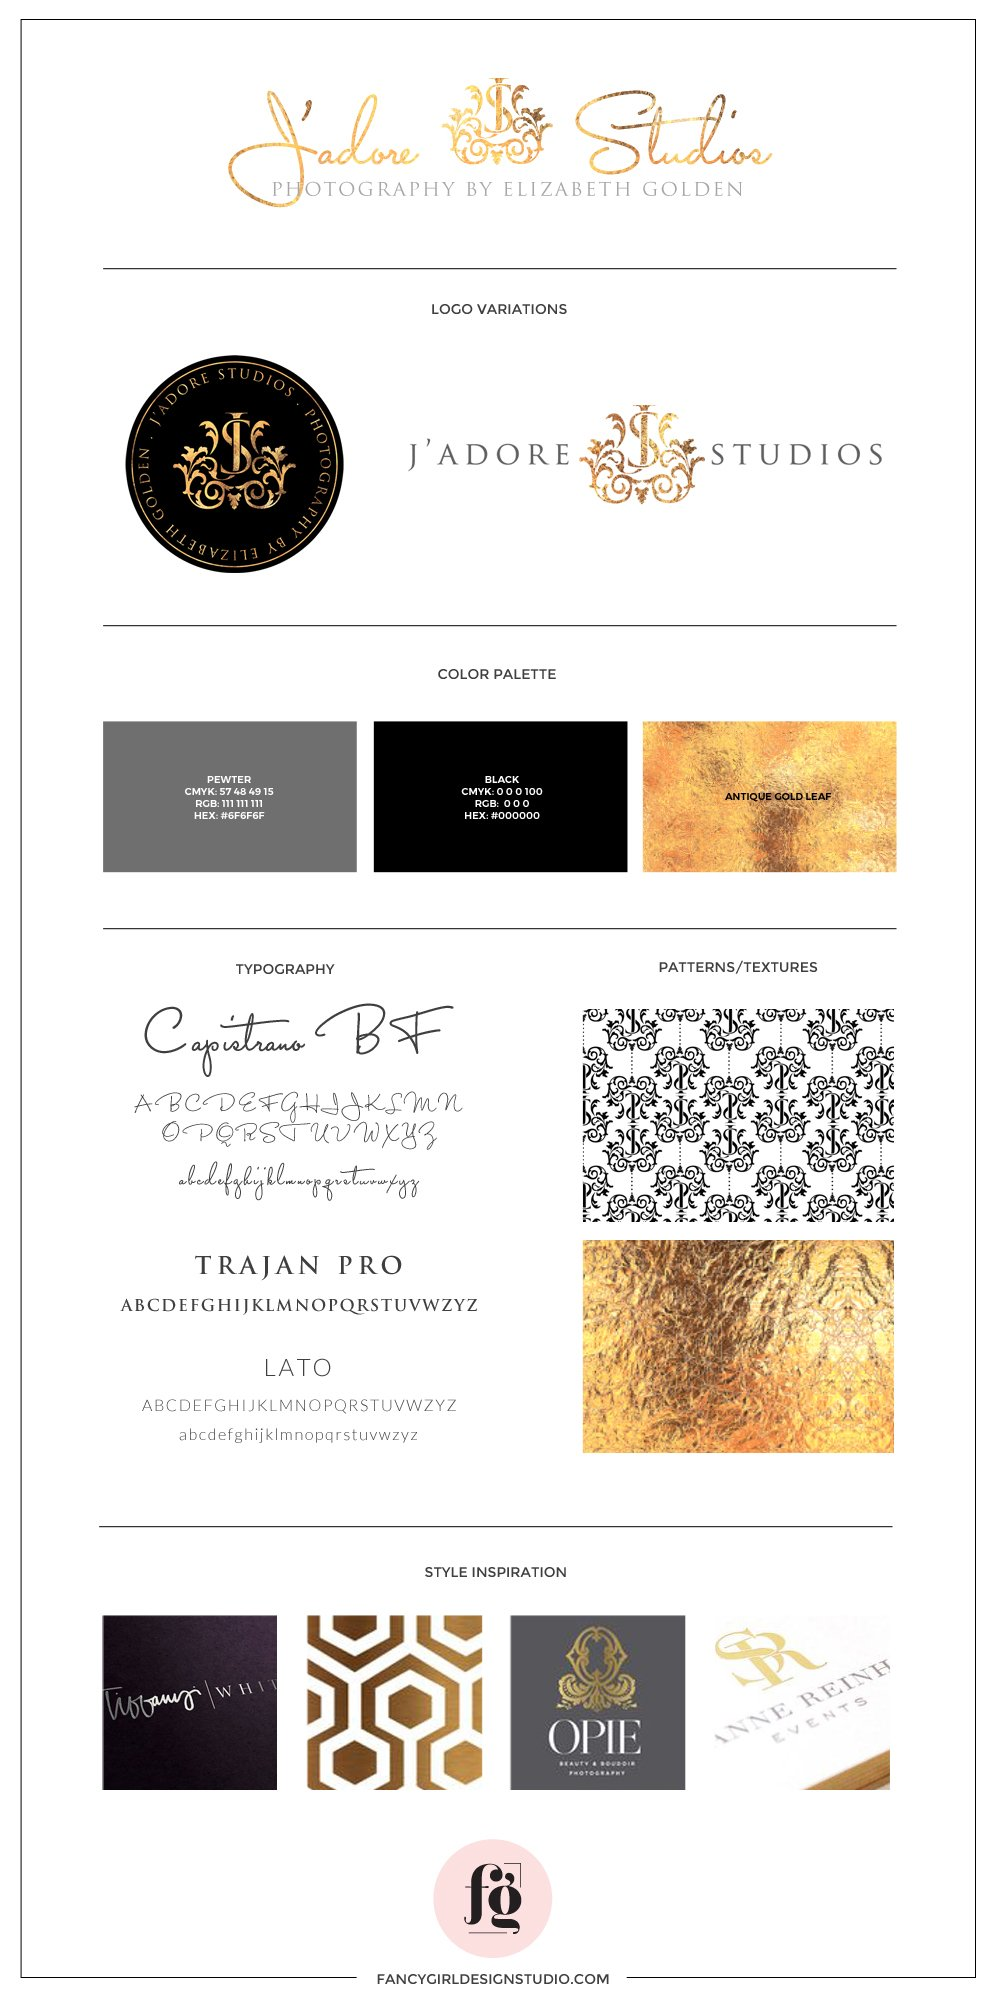 Brand board for J'adore Studios Photography by Fancy Girl Design Studio